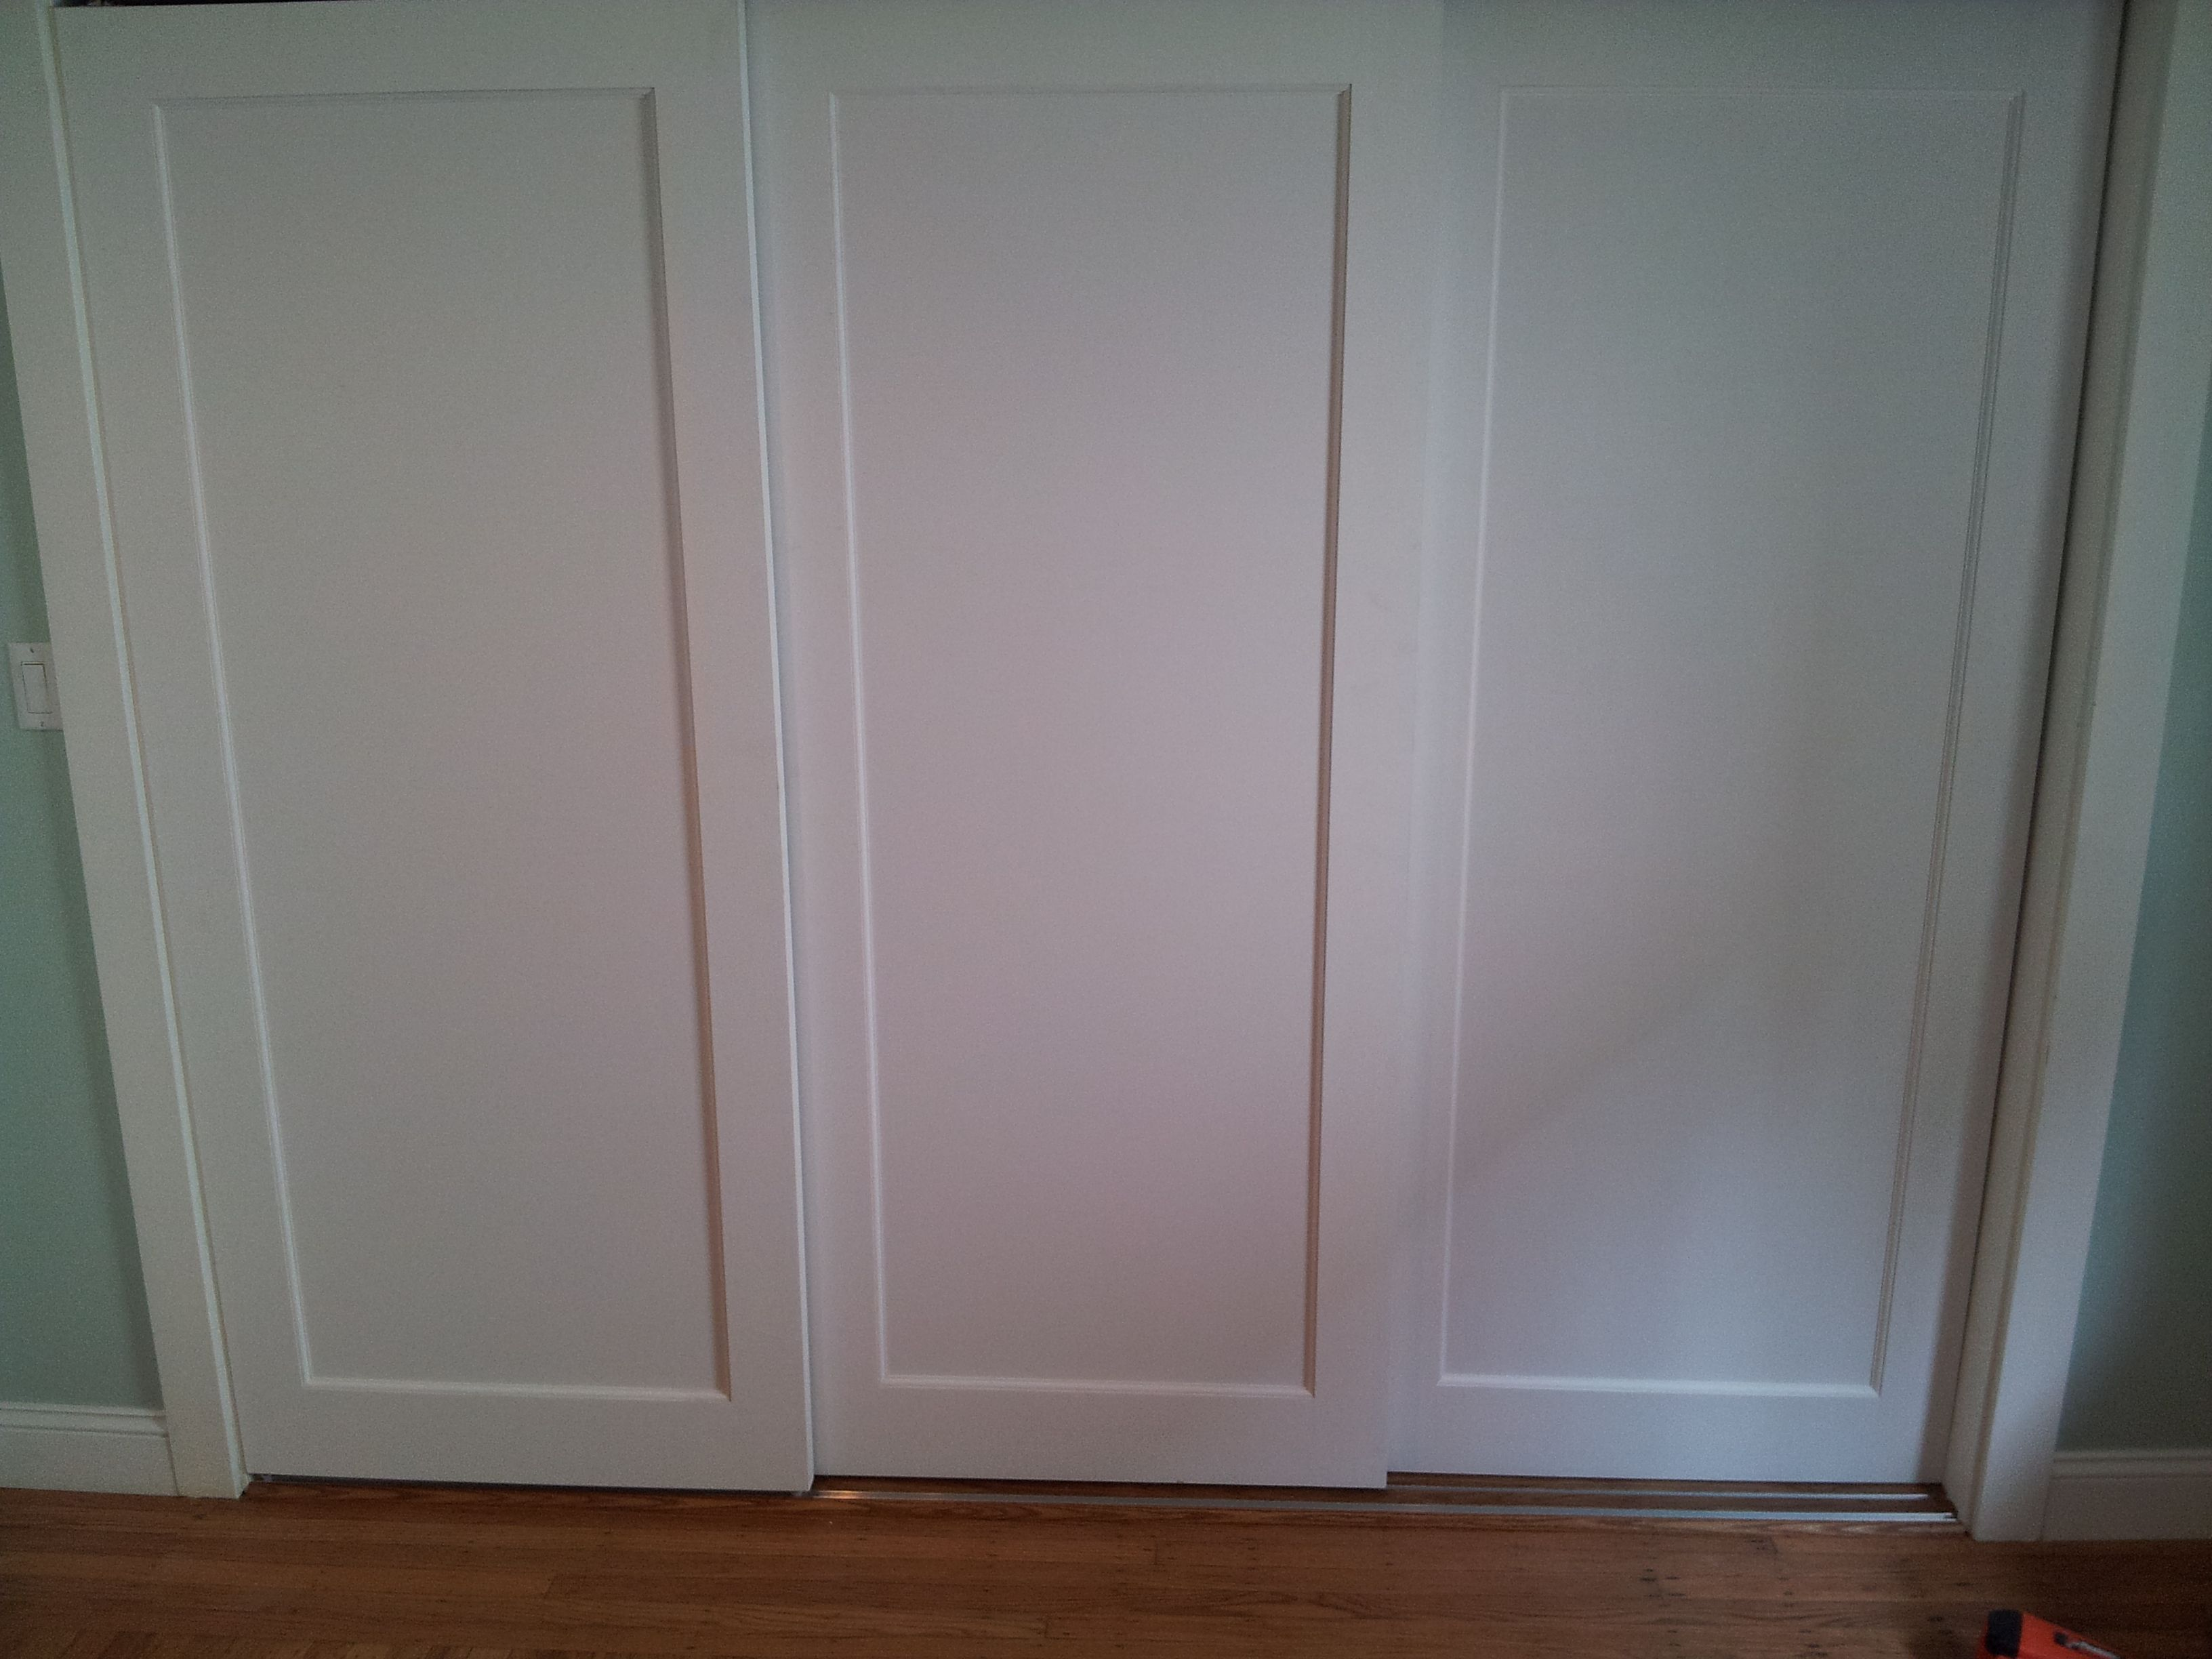 Installed 3 Panel Doors On Custom Sliding Track For Extra Wide Closet.